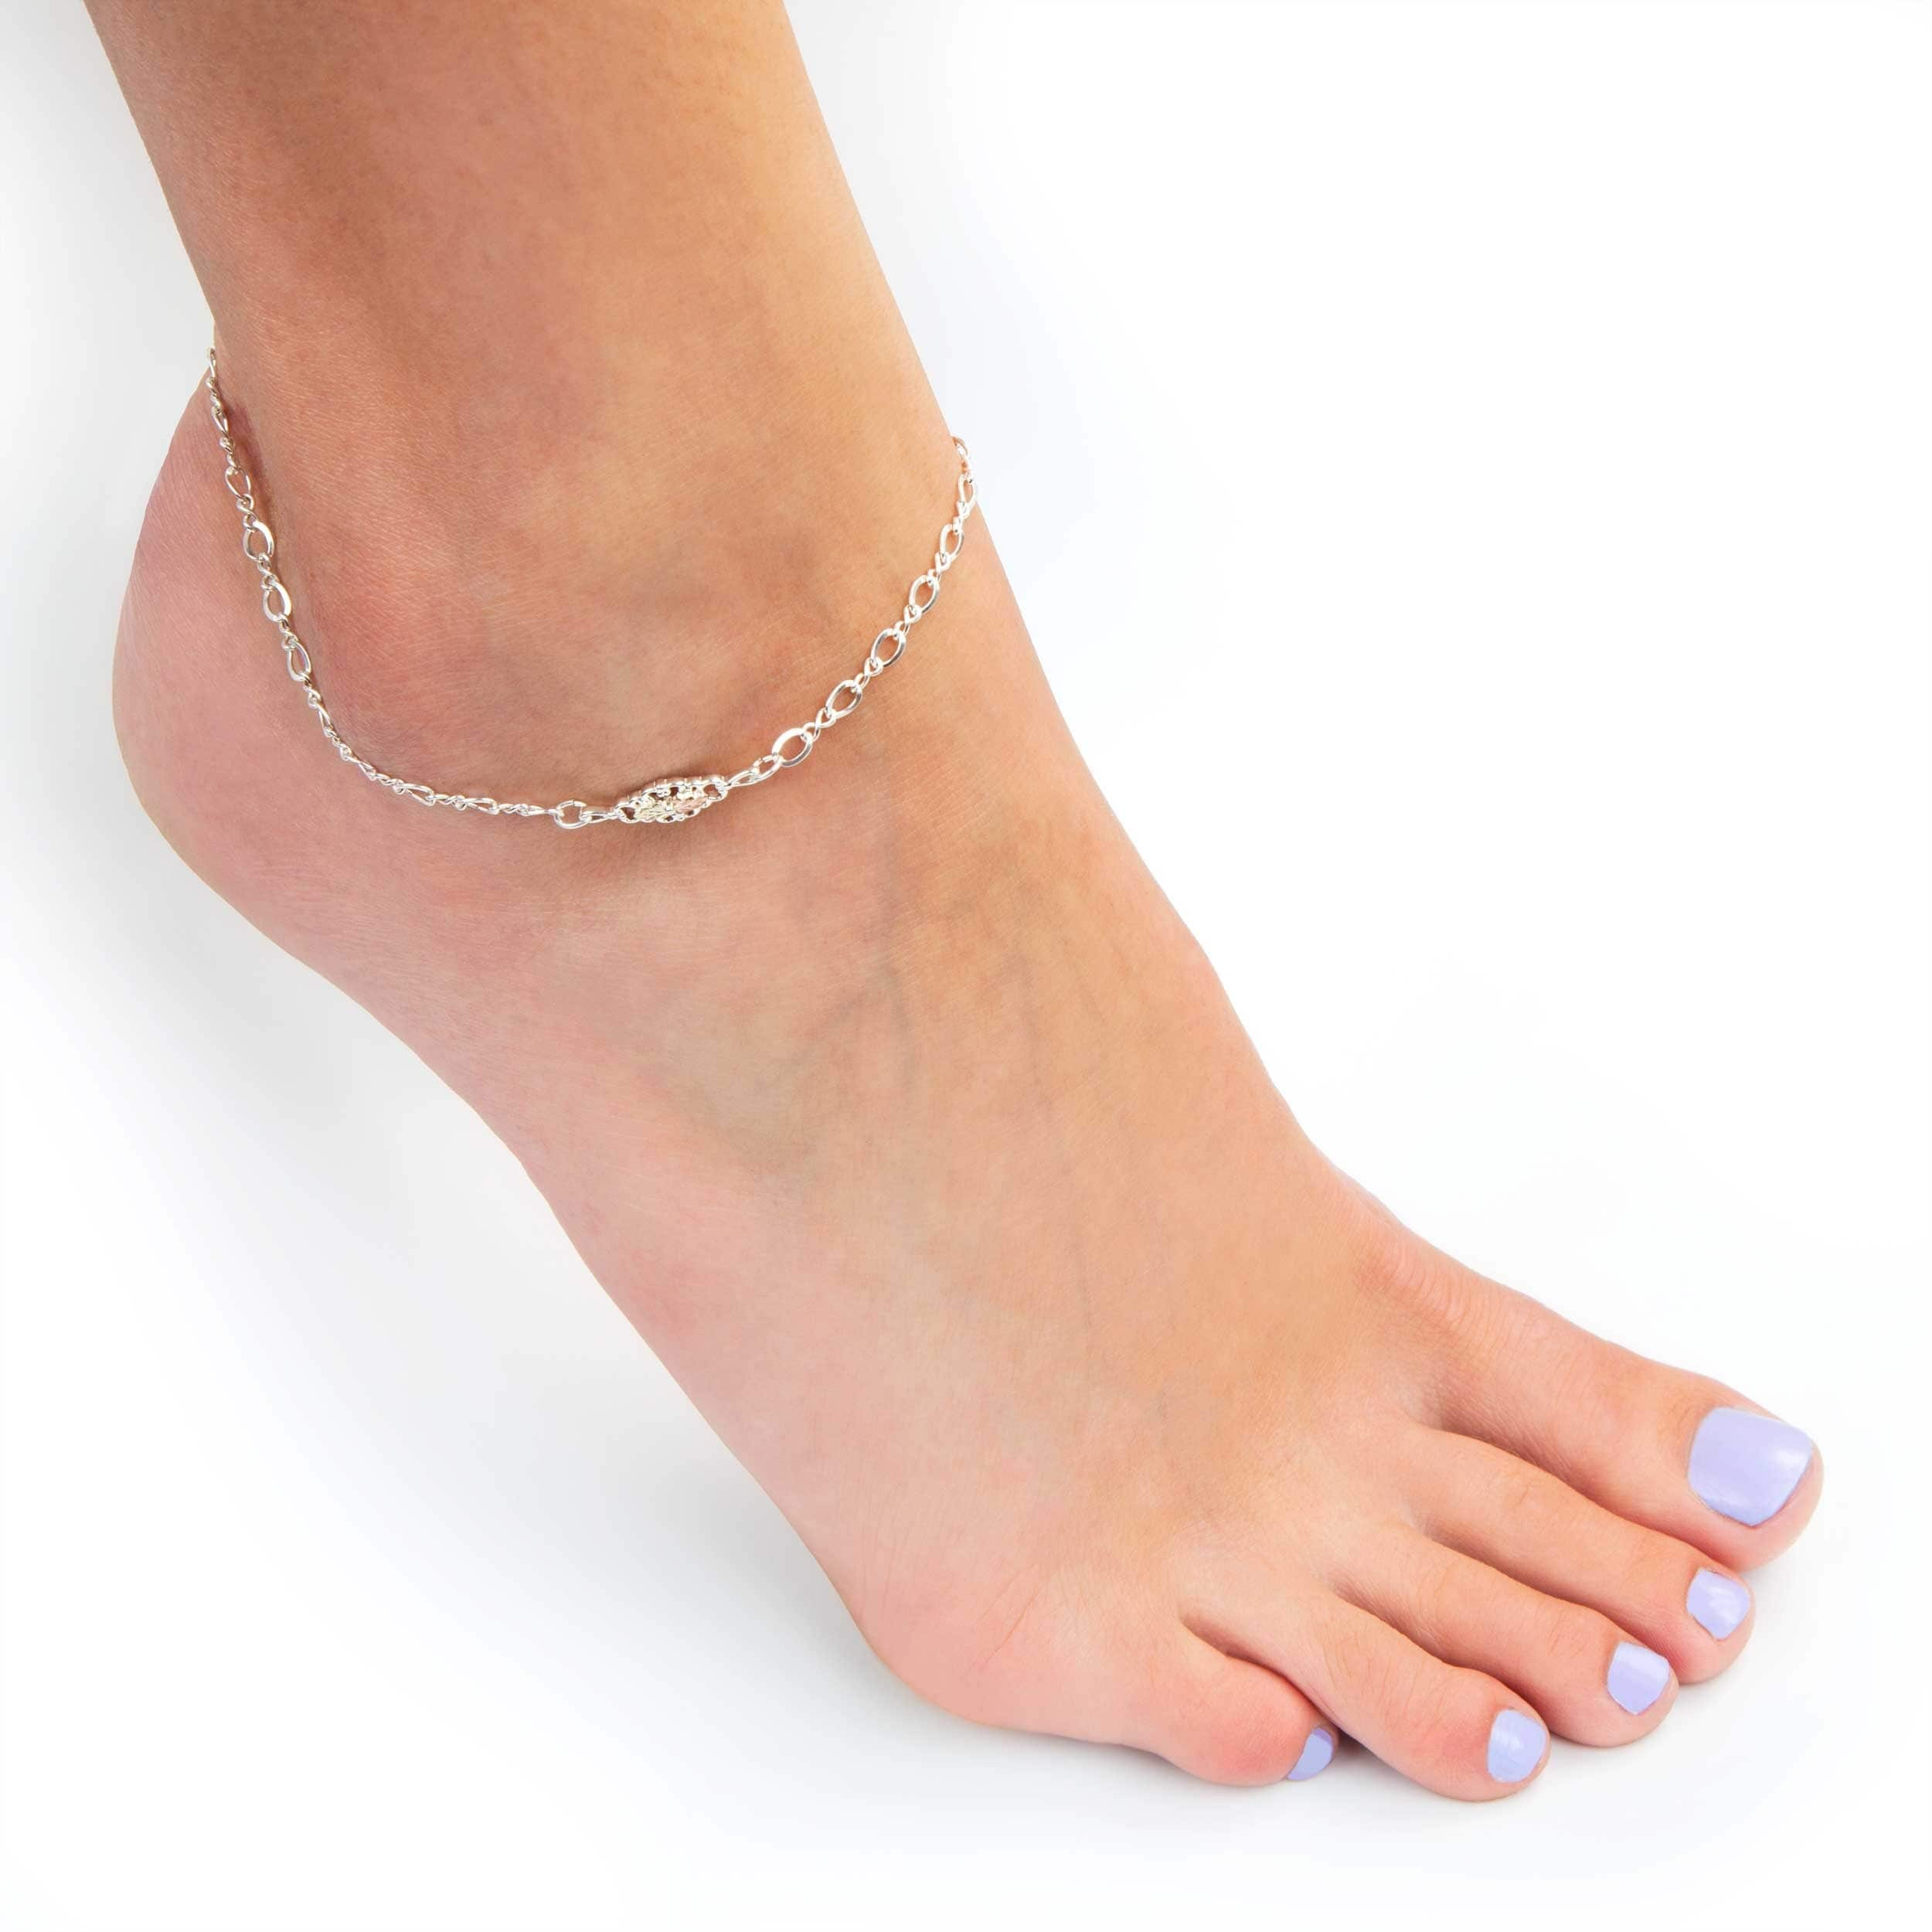 rainbow foot anklets bracelet jewellery silver women patterns ksvhs for cute ankle popular chaine bracelets cheville anklet barefoot cheap beaded sandals beads chain gold